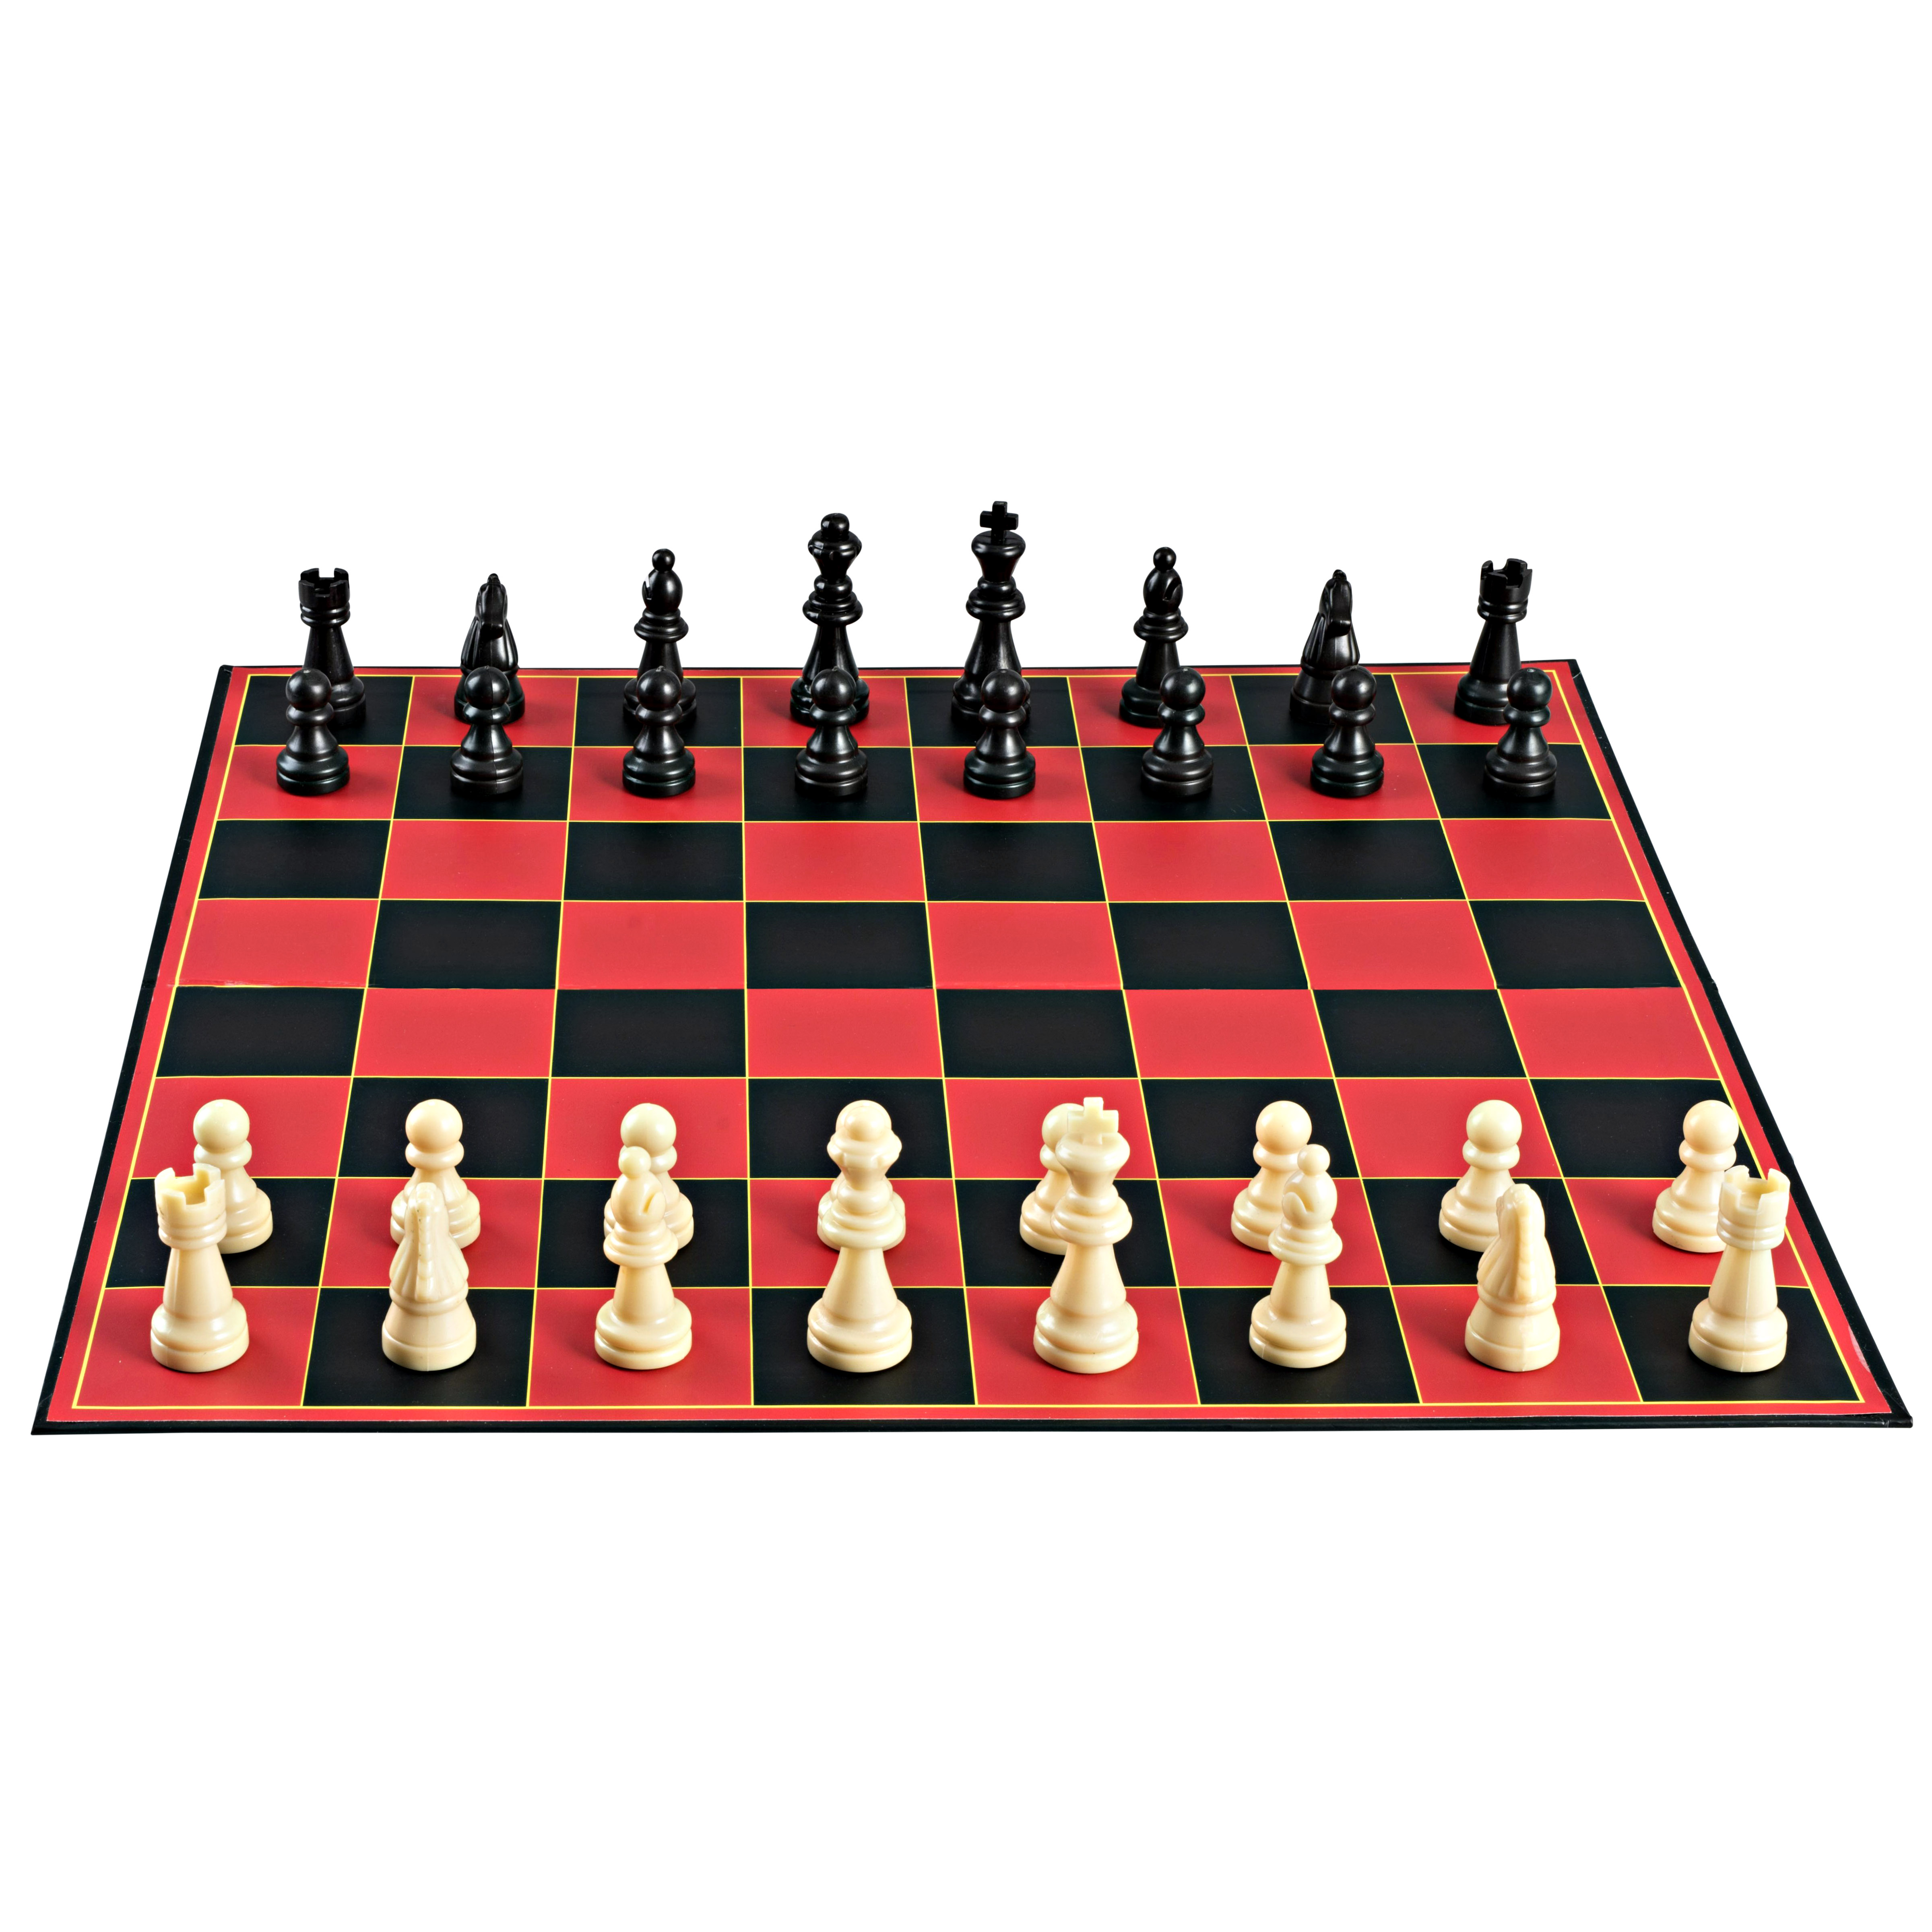 Point Games Classic Chess Board Game, with Super Durable Board, Best Folding Board Game for the Entire Family. by Point Games